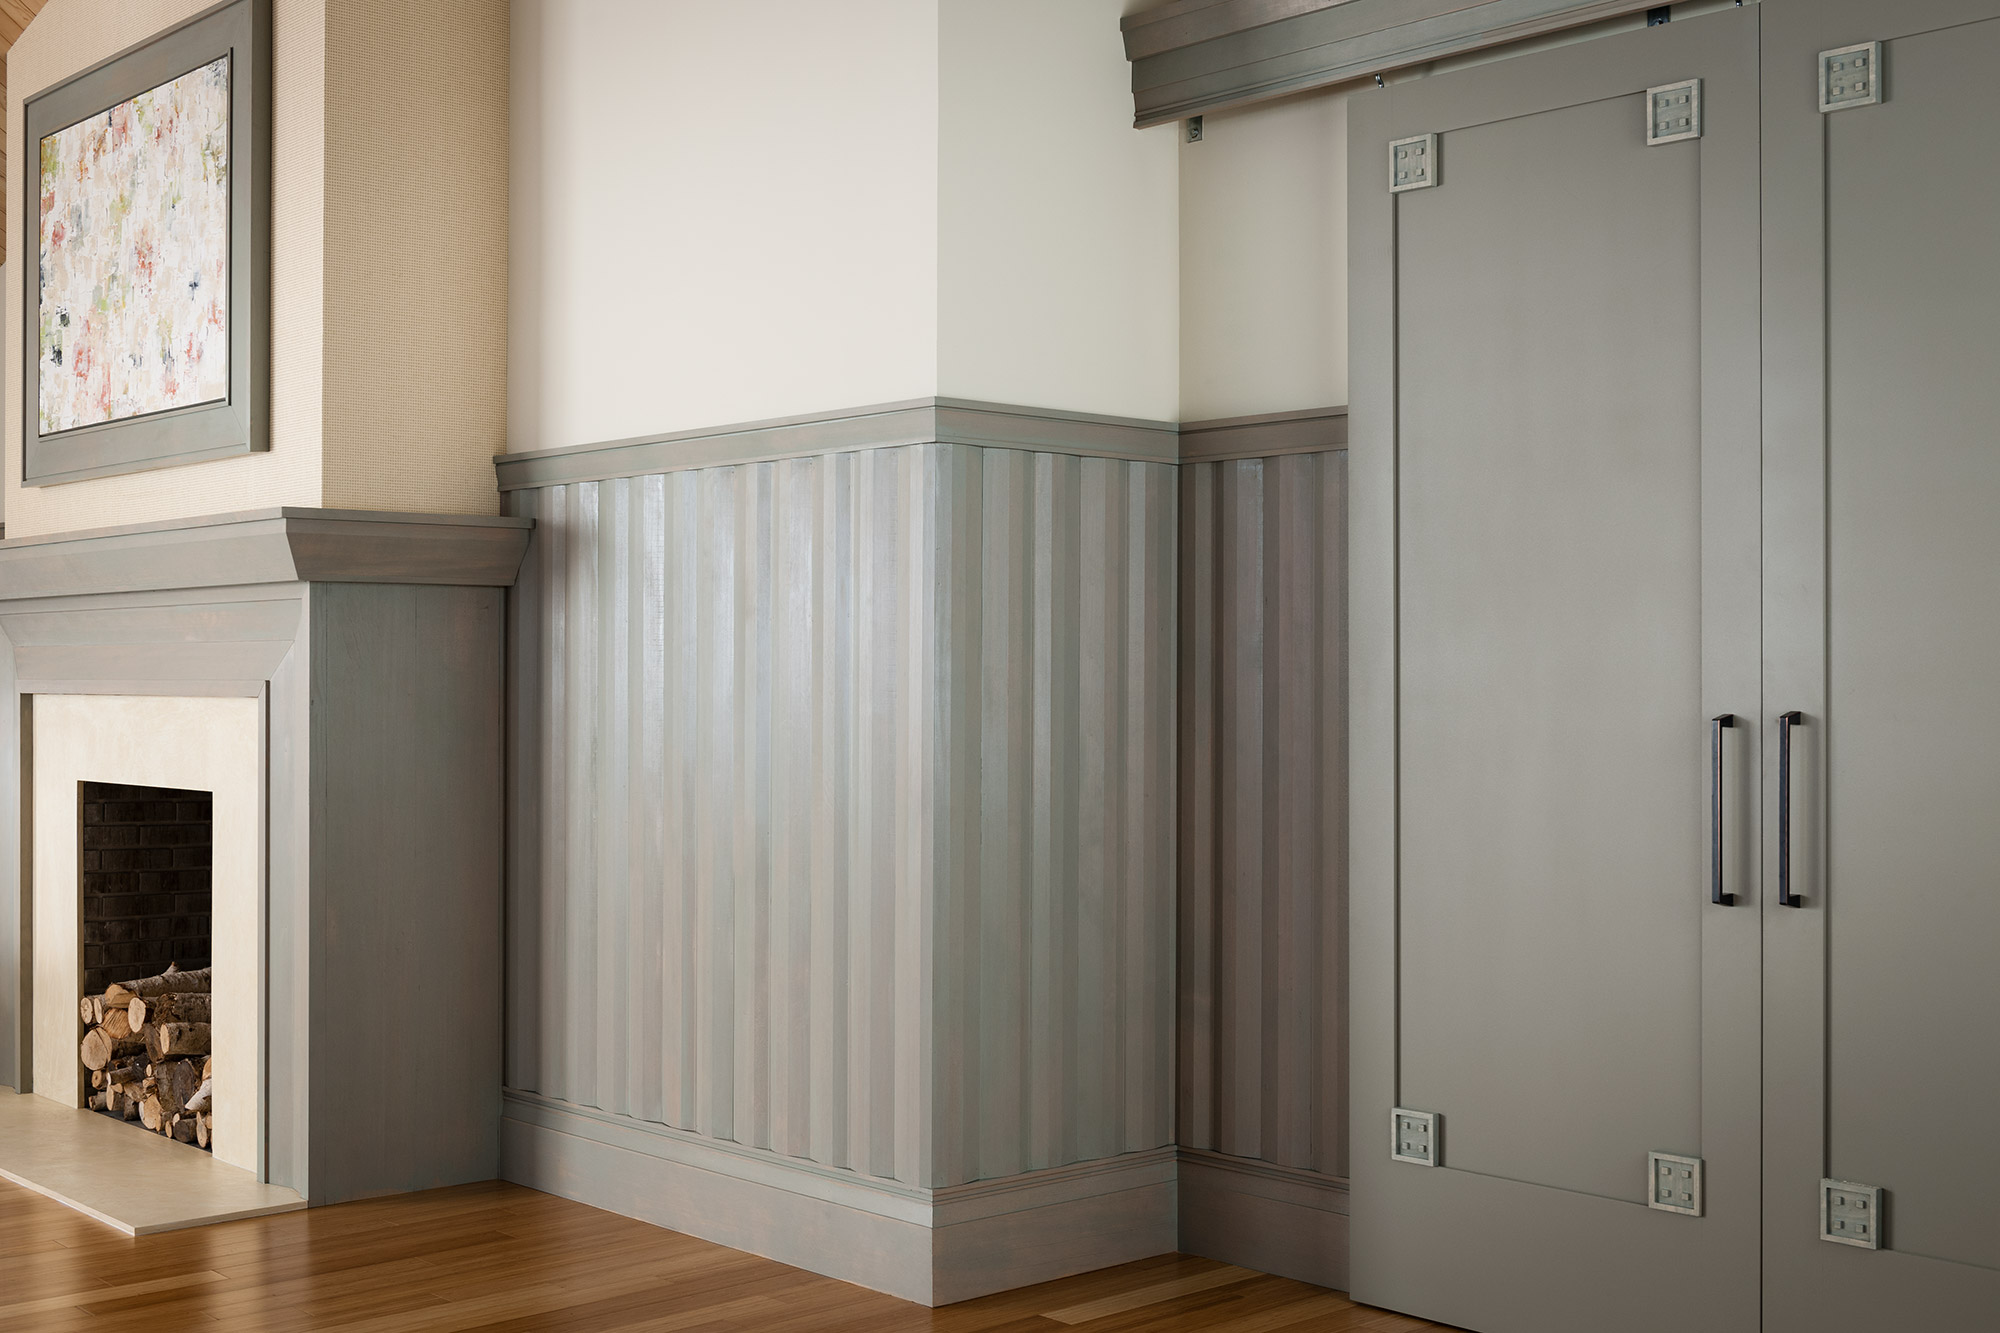 add an authentic craftsman style texture to your walls with mouldings in a gray tone